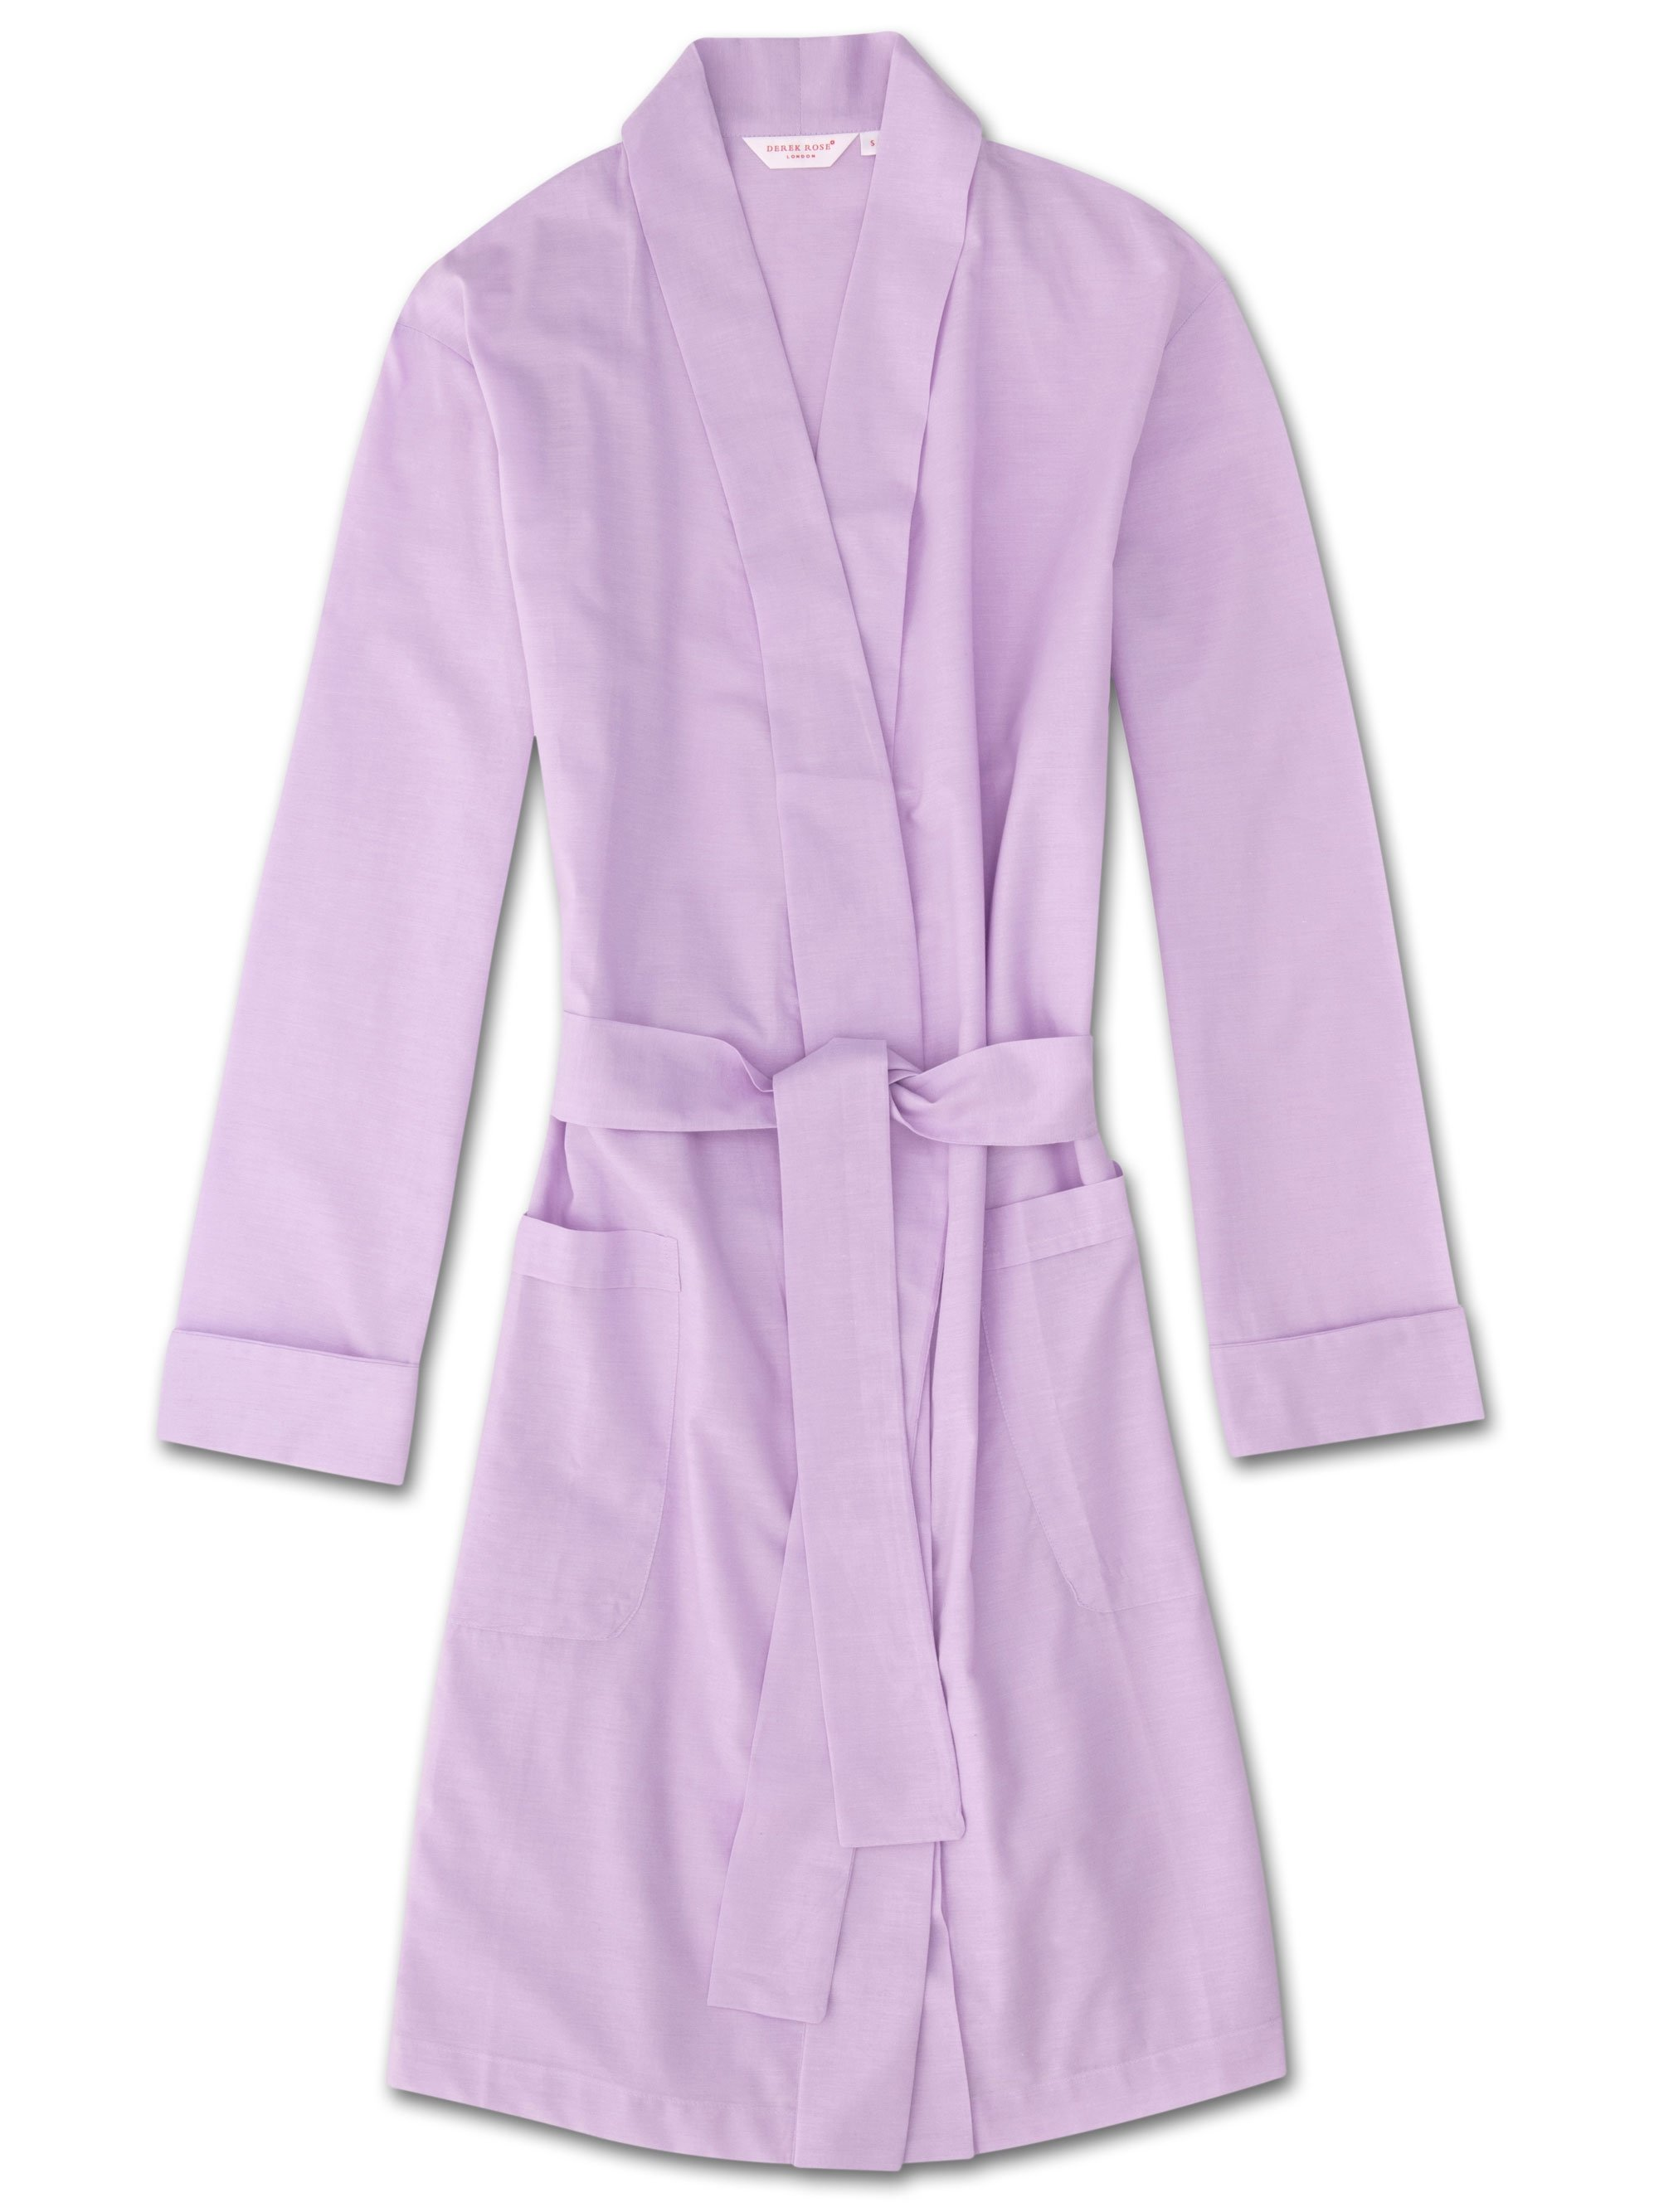 Women's Dressing Gown Amalfi Cotton Batiste Lilac